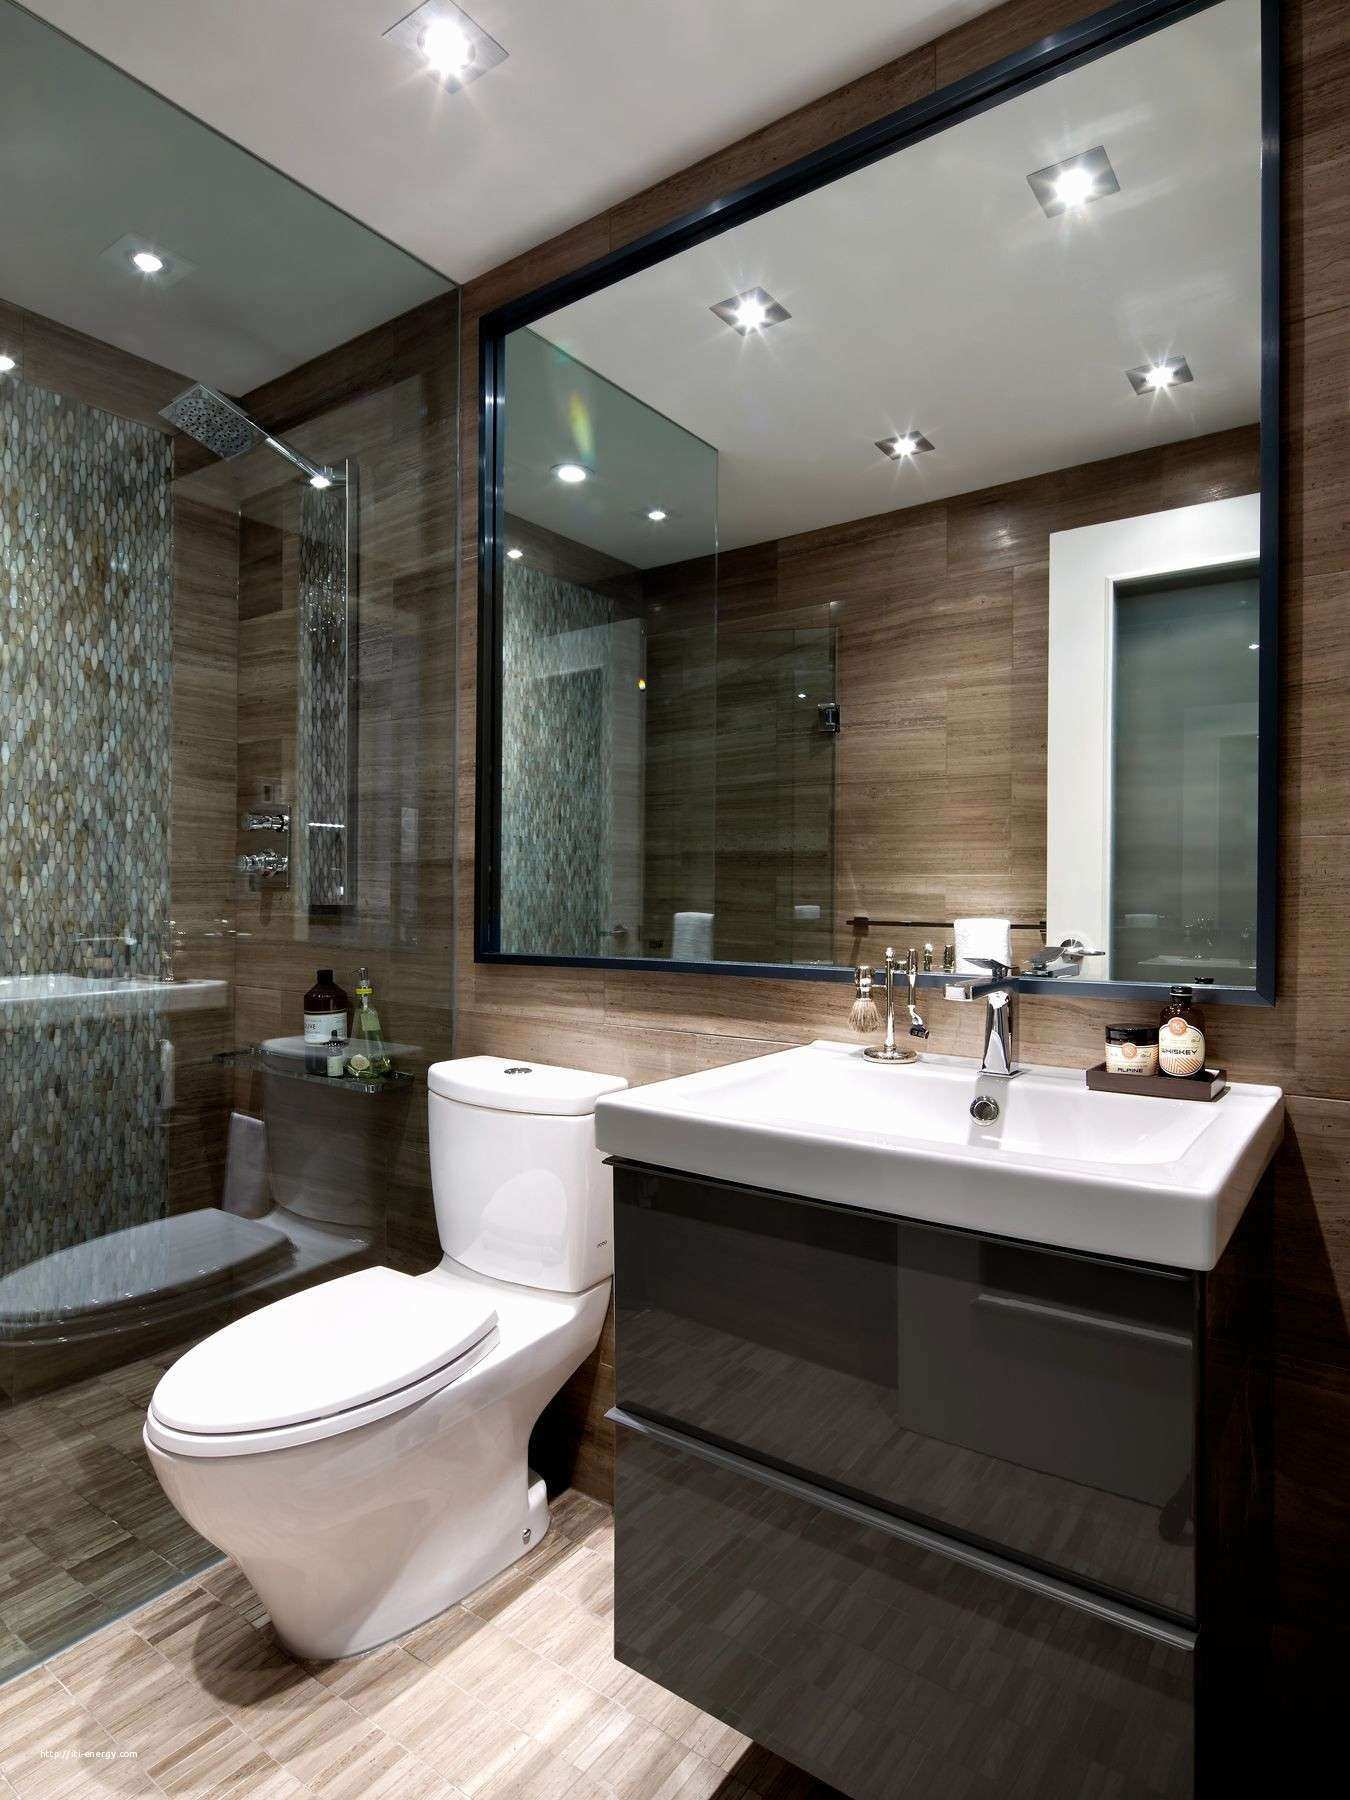 Bathroom Room Decor Ideas